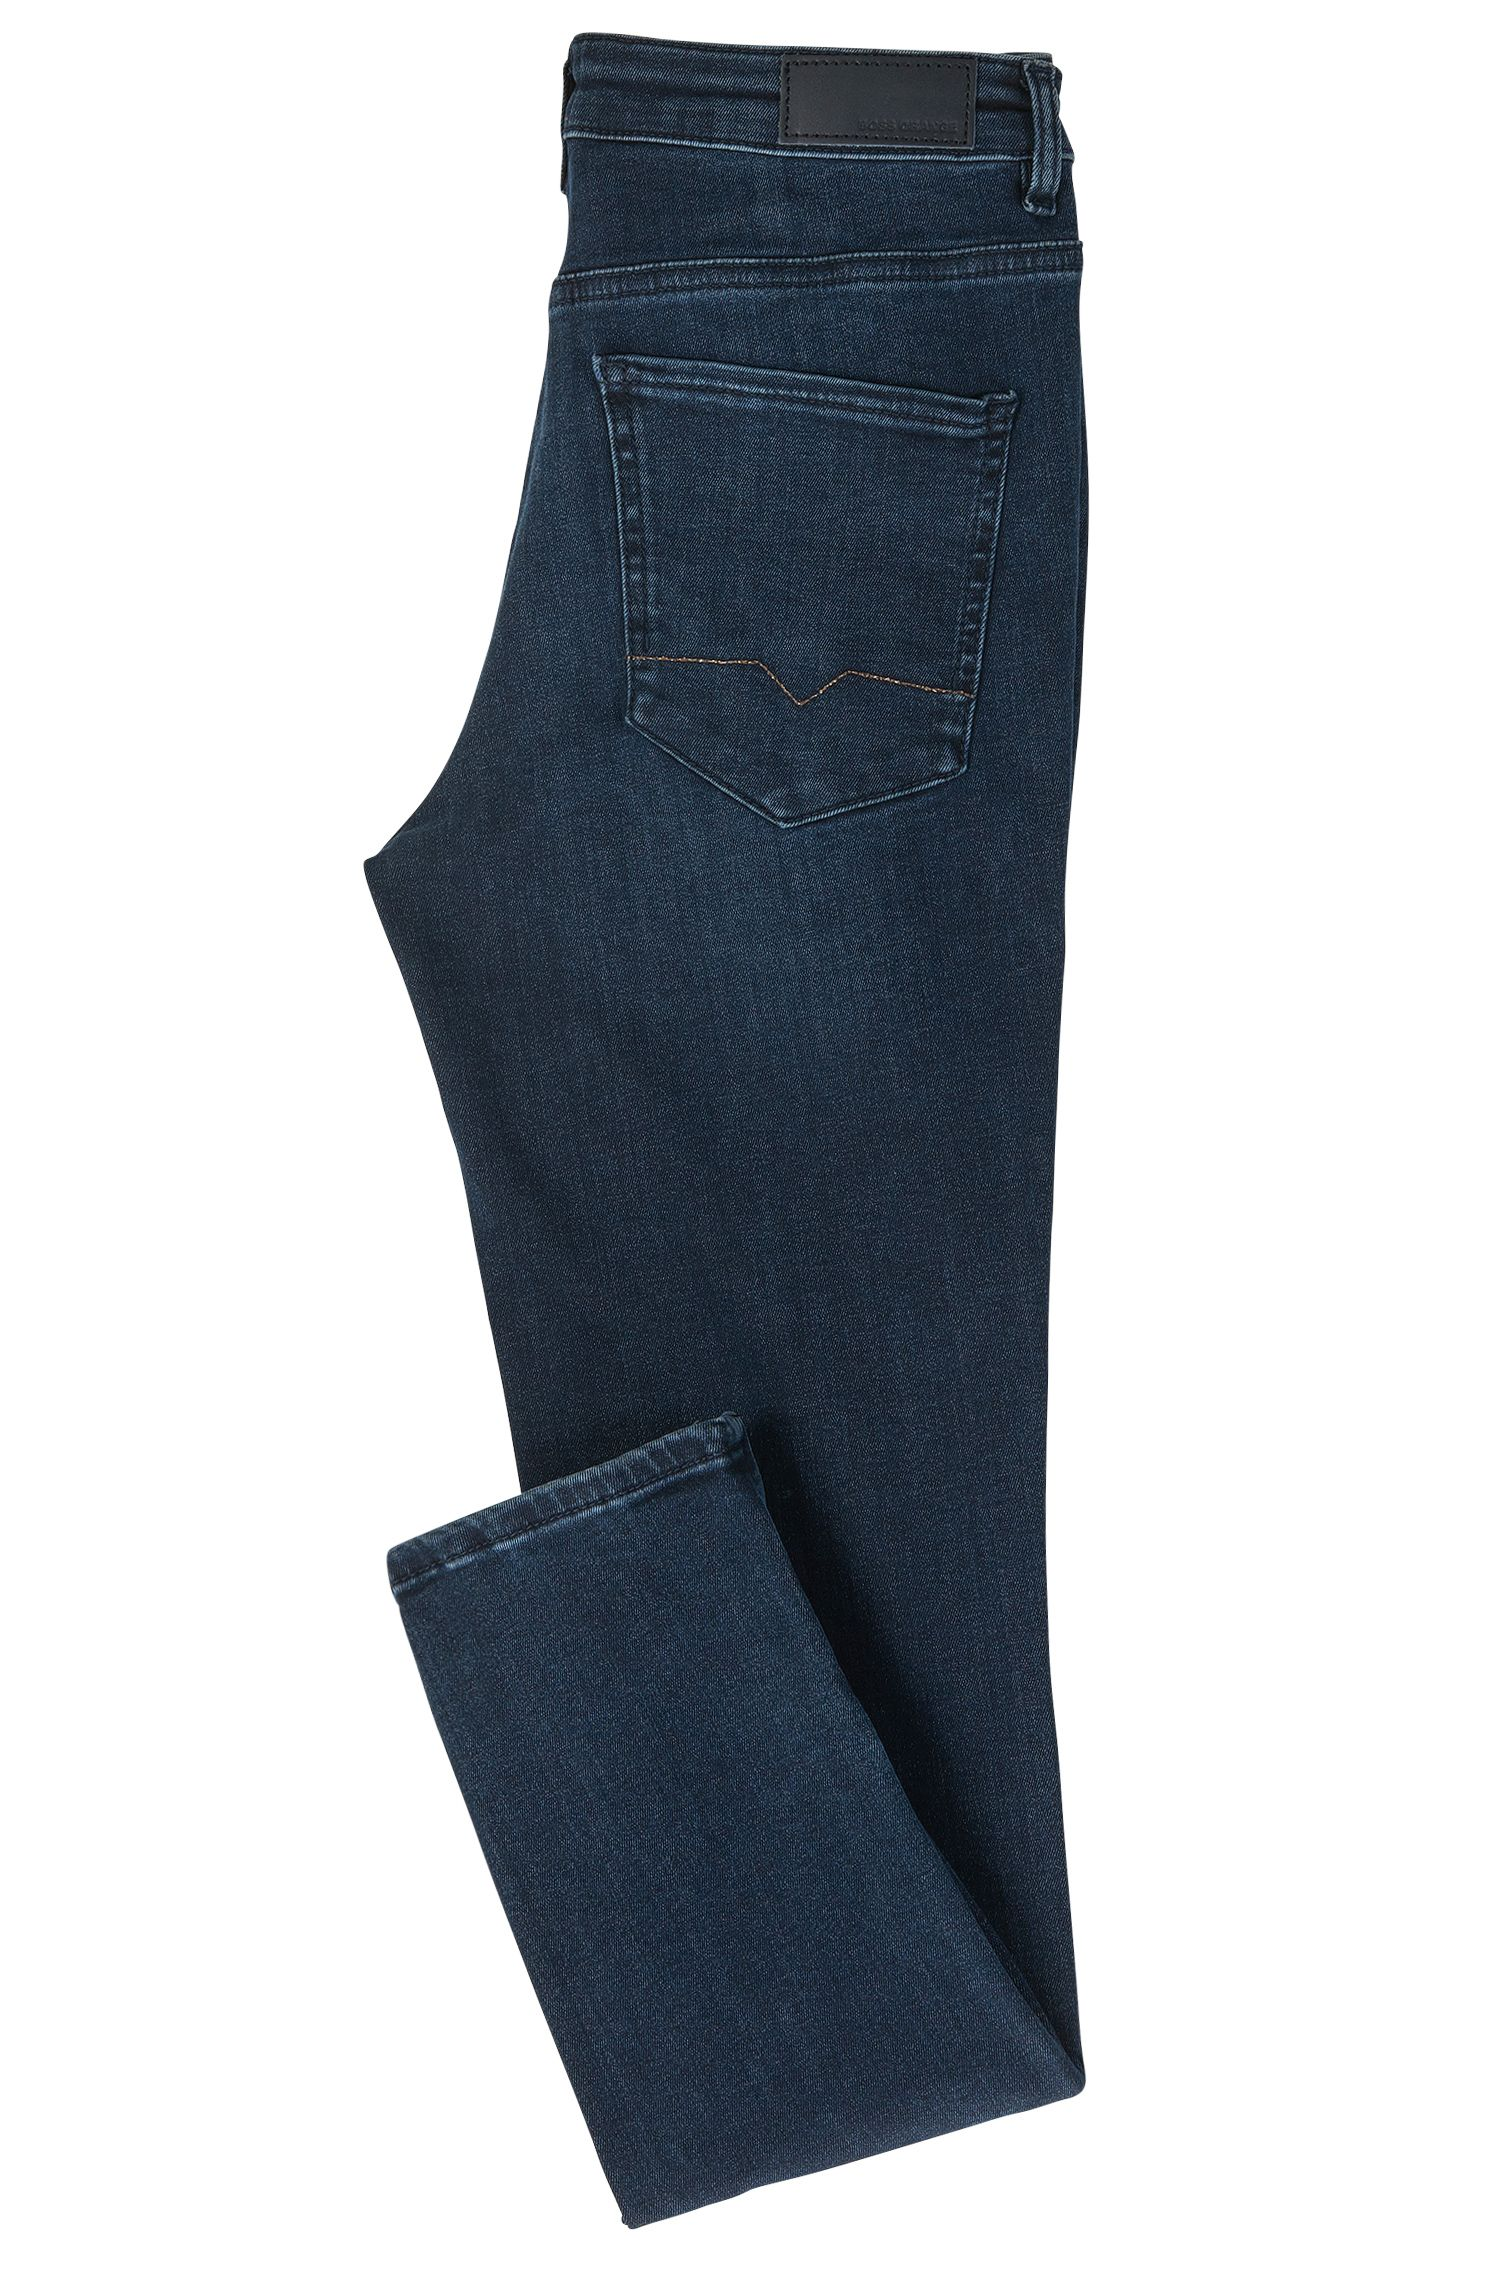 Jeans Skinny Fit en denim power-stretch